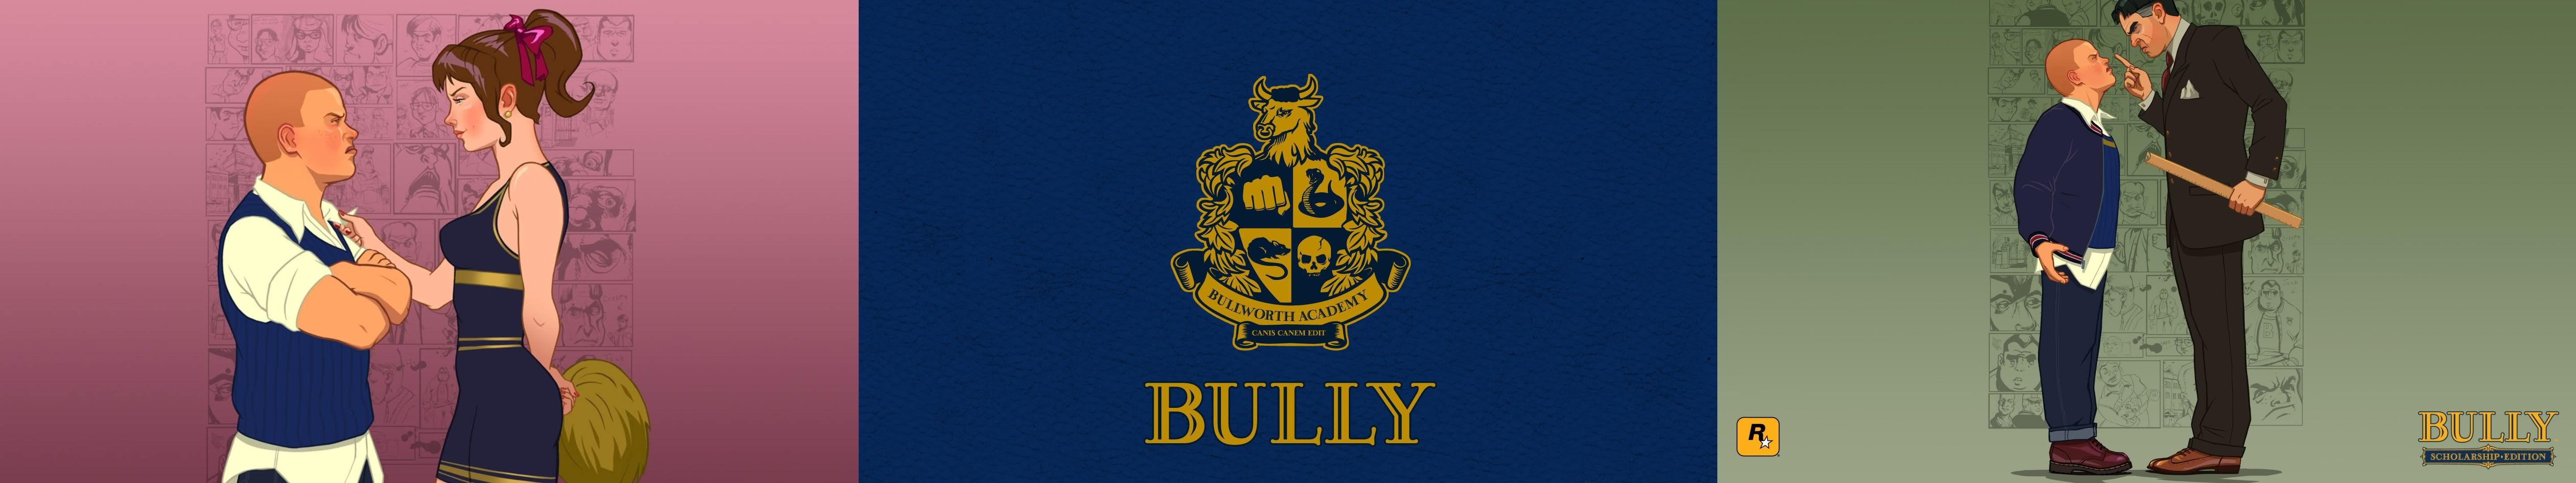 Bully Wallpapers Wallpaper Cave